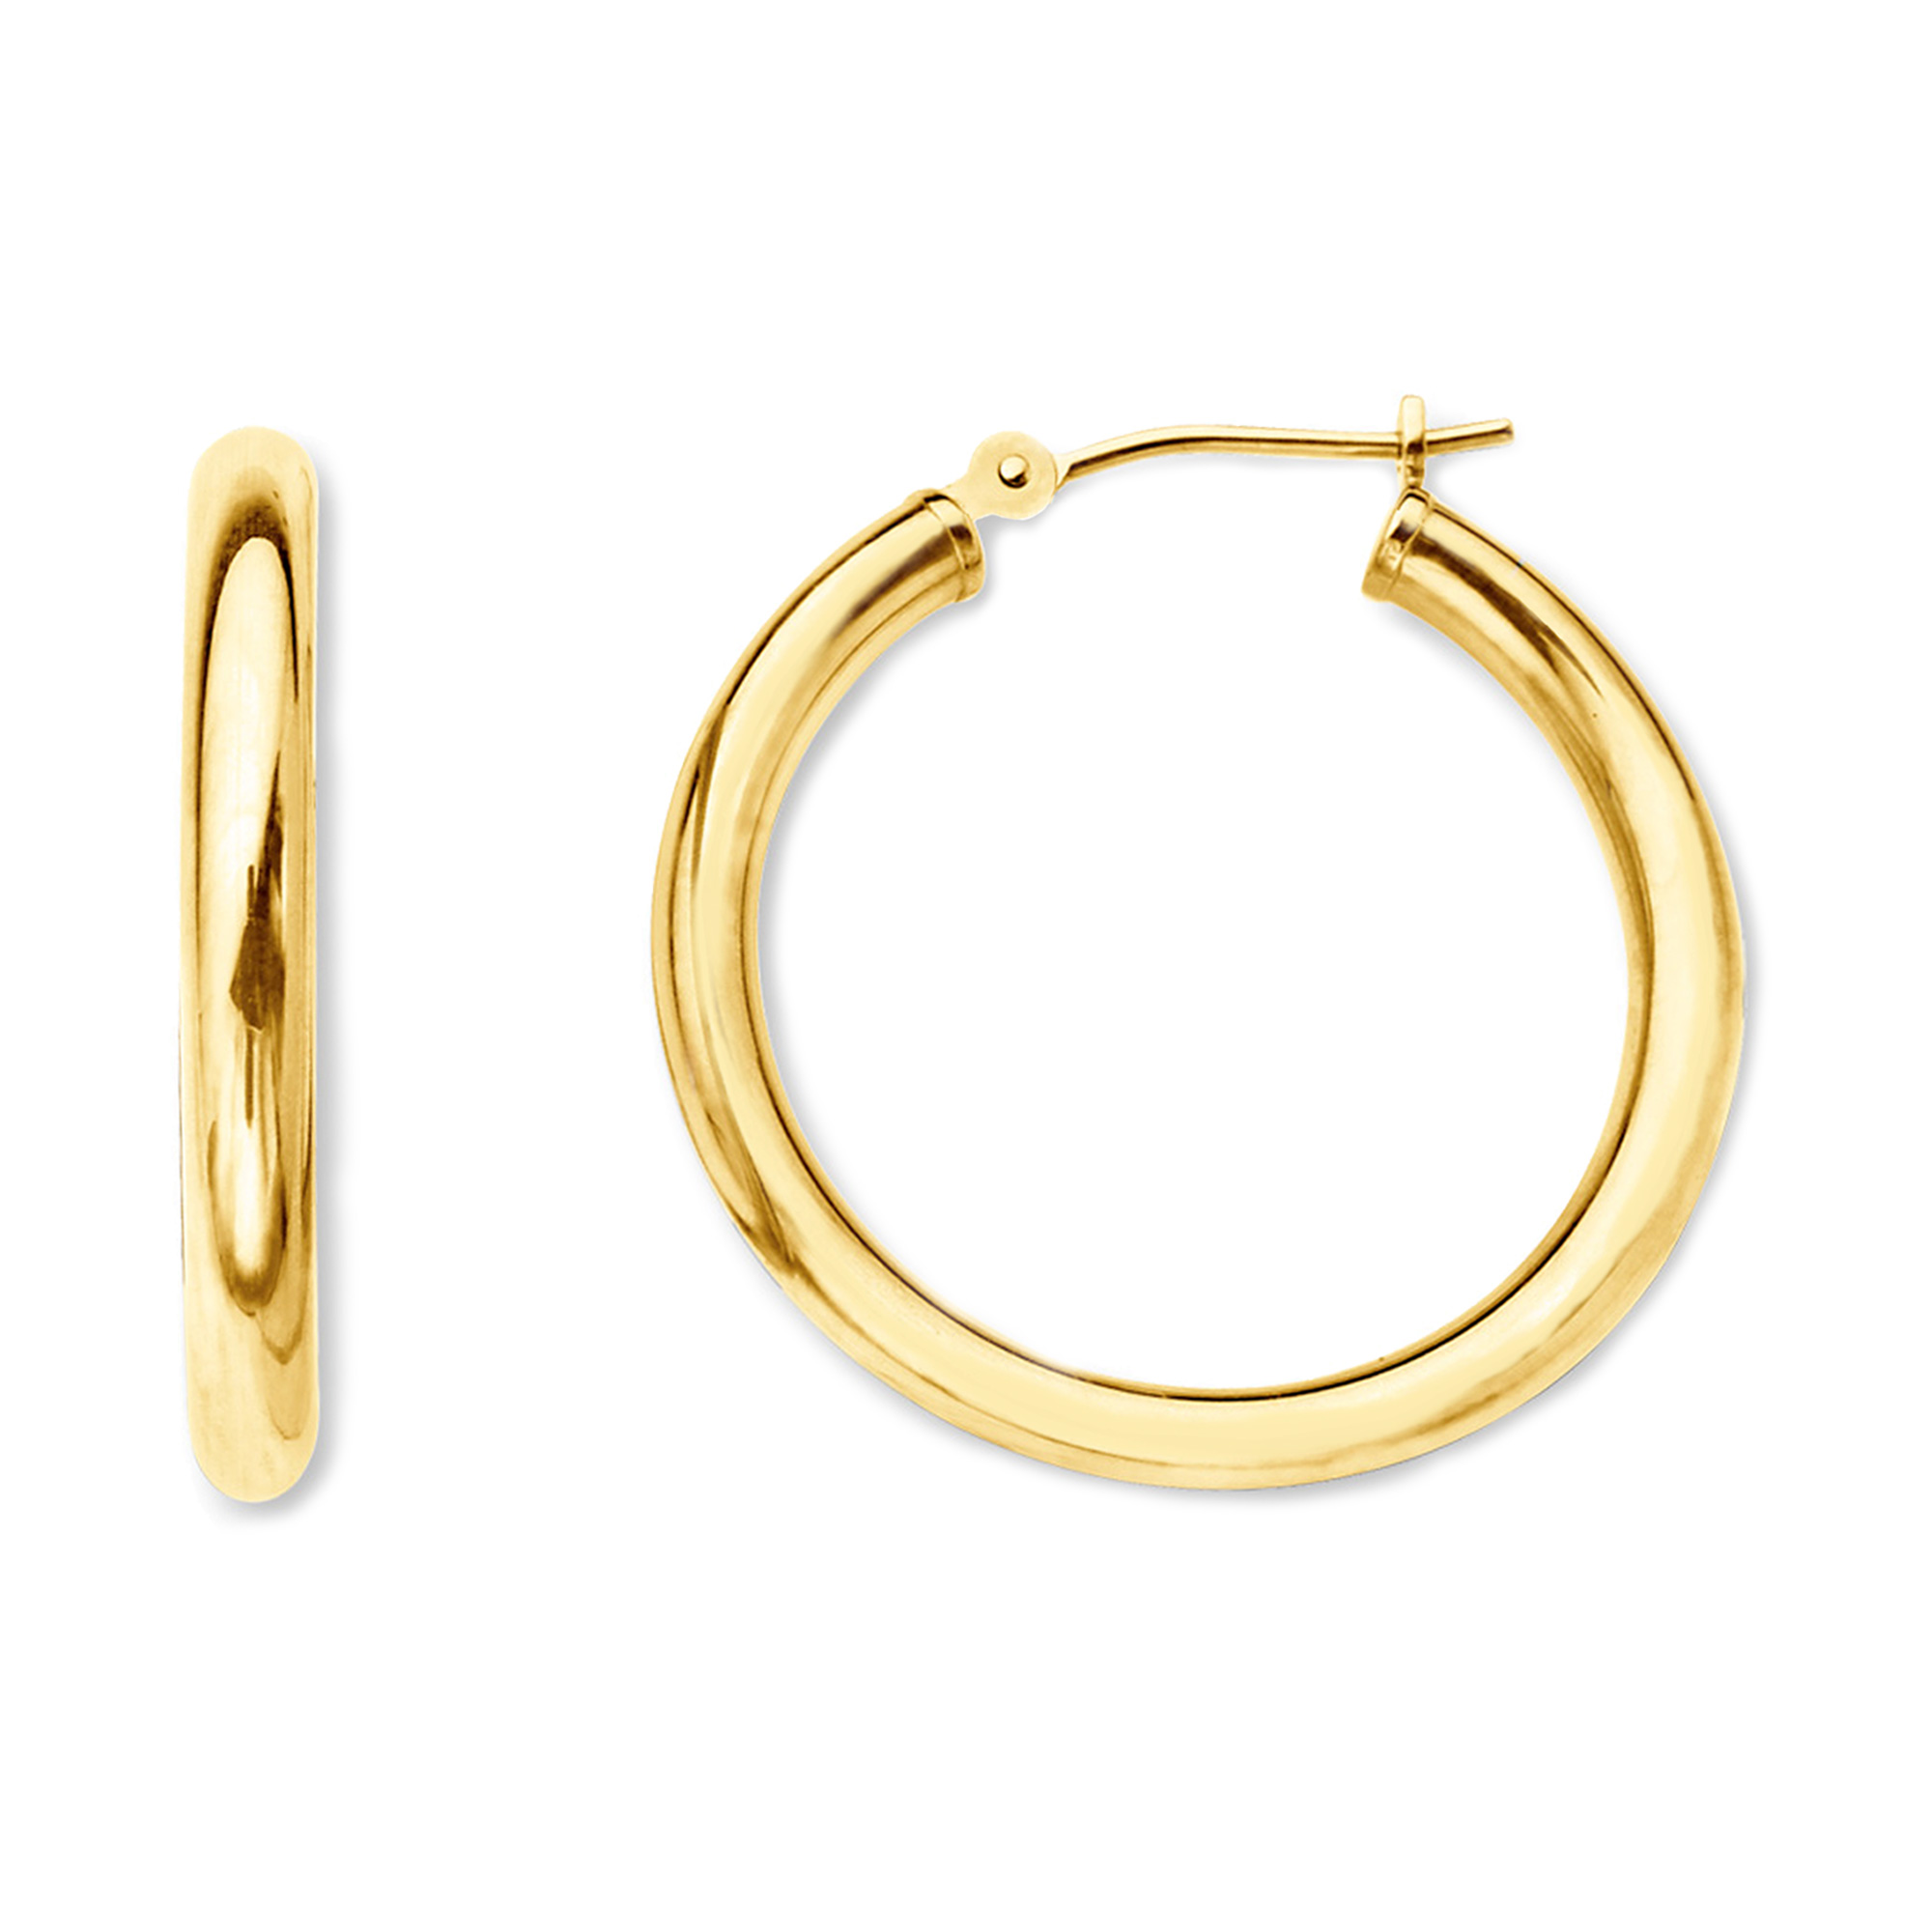 14K Yellow Gold 2MM Shiny Round Tube Hoop Earrings, 15mm Complete your jewelry collection with a gorgeous pair of 14K gold hoop earrings. Whether you prefer large bohemian look or tiny orbs, you'll discover plenty of sizes to match your style. These earrings have a secure snap post clasp making them easy to wear and remove. Earrings come in a  gift box making them ready to be gifted.